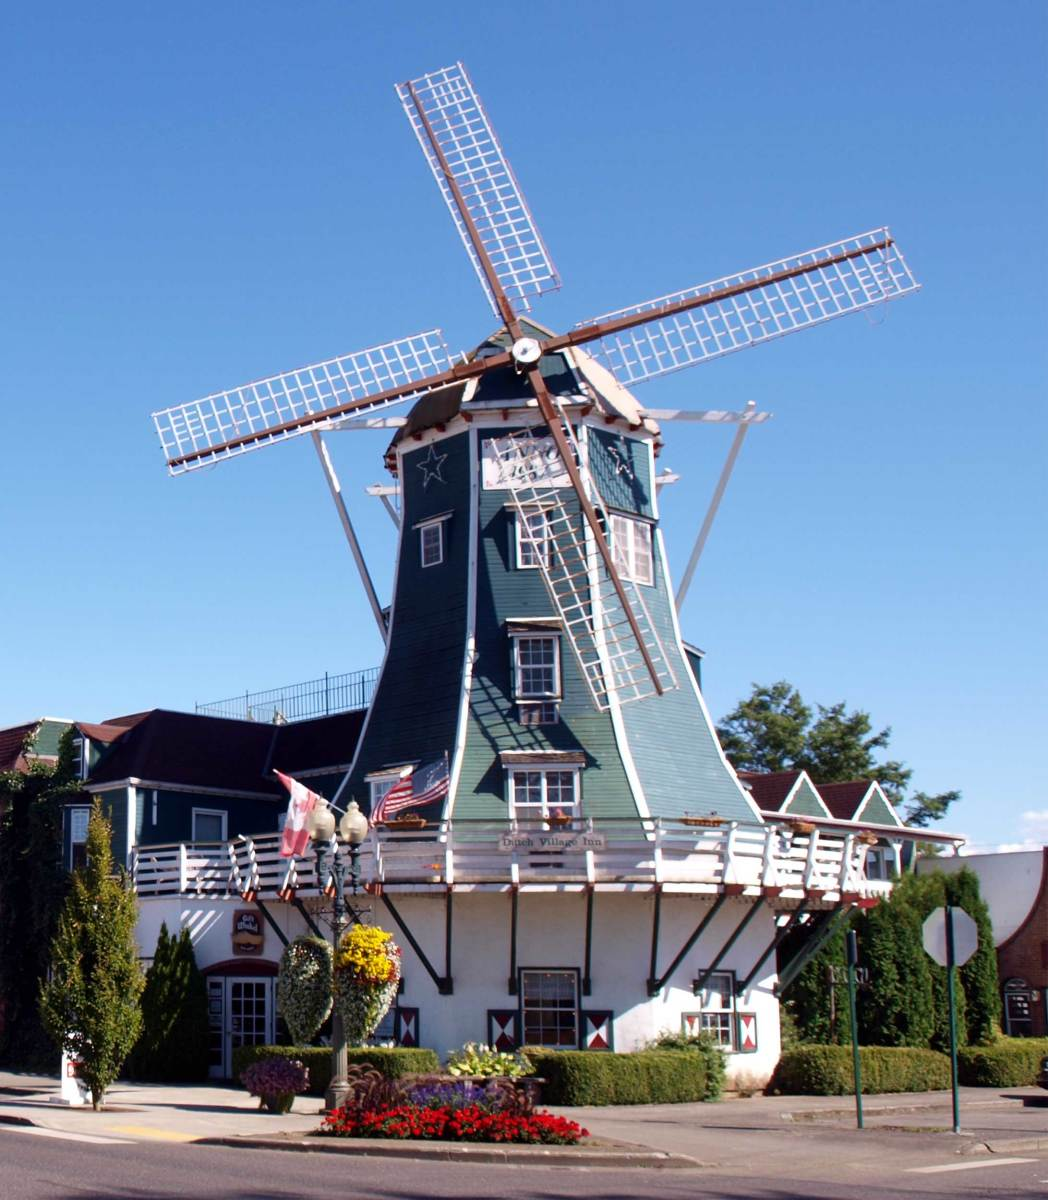 Lynden, Washington: A Quaint Dutch Town in the Pacific Northwest